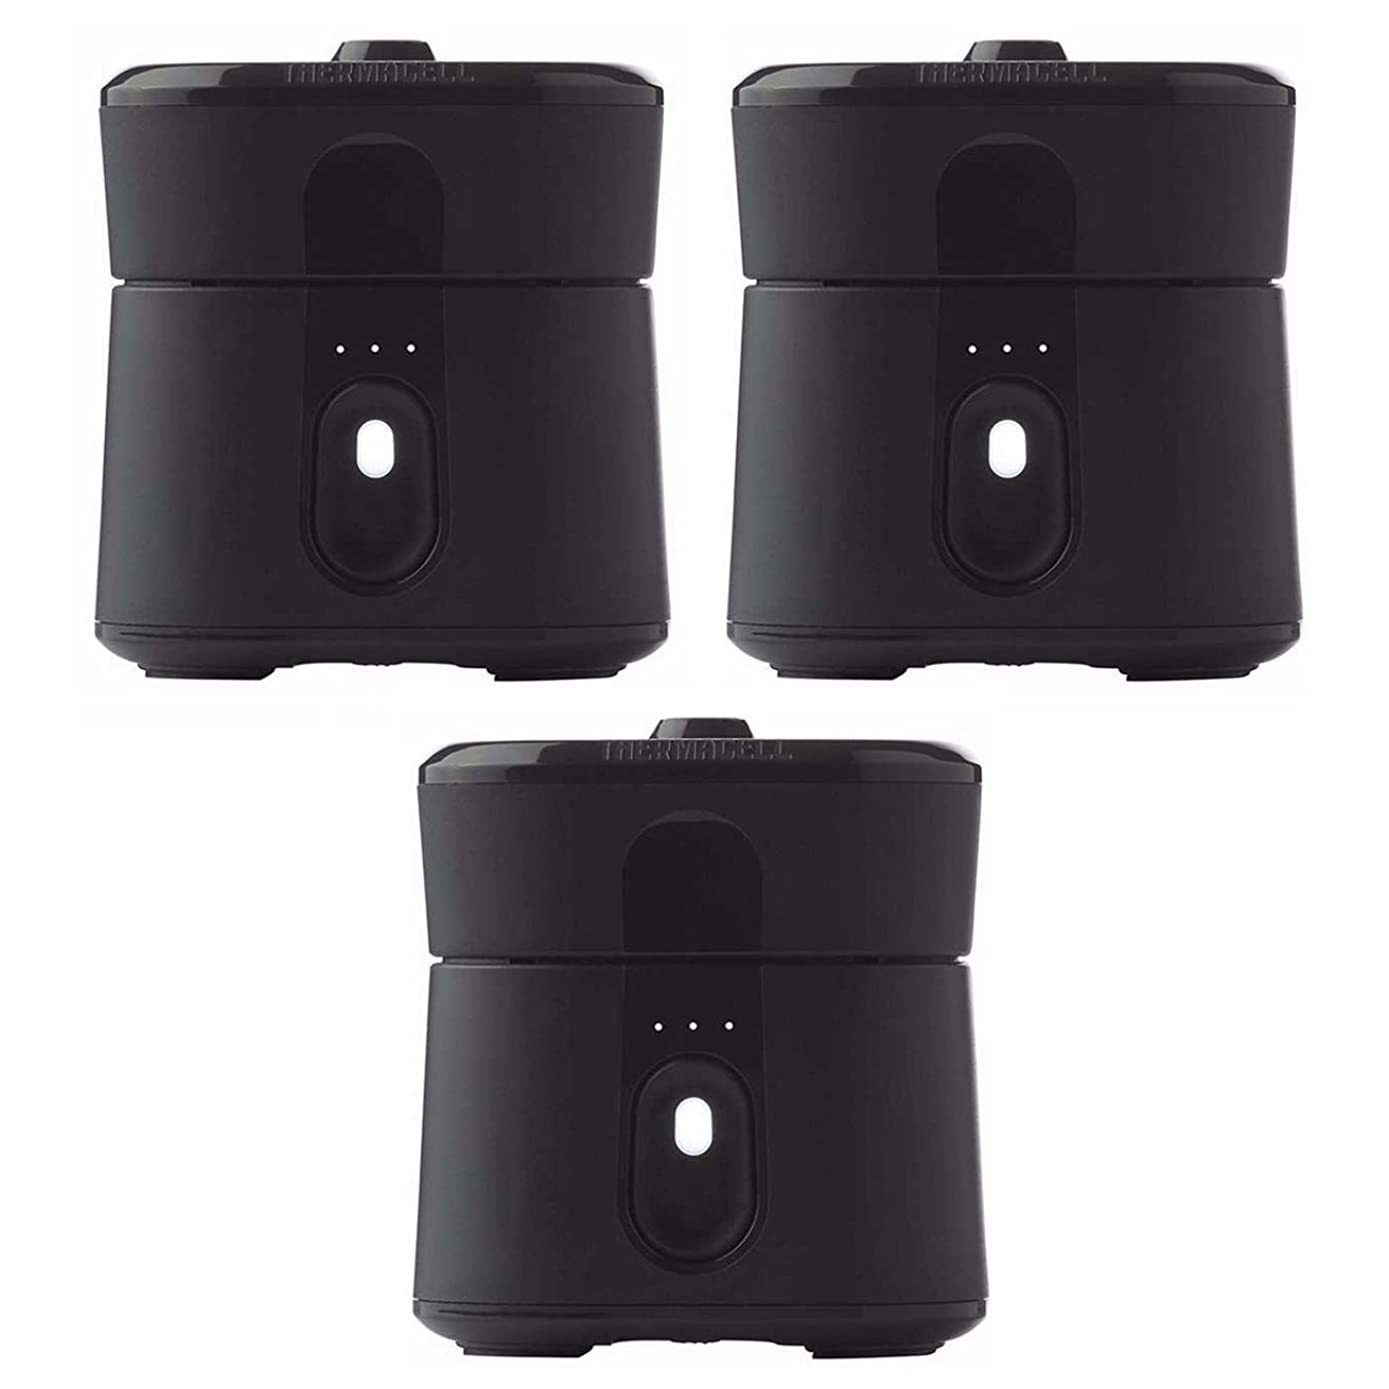 Thermacell Radius Zone Pocket-Sized Mosquito Repelling Device (Black) 3-Pack: Each Protects 110 Sq. Ft. Zone